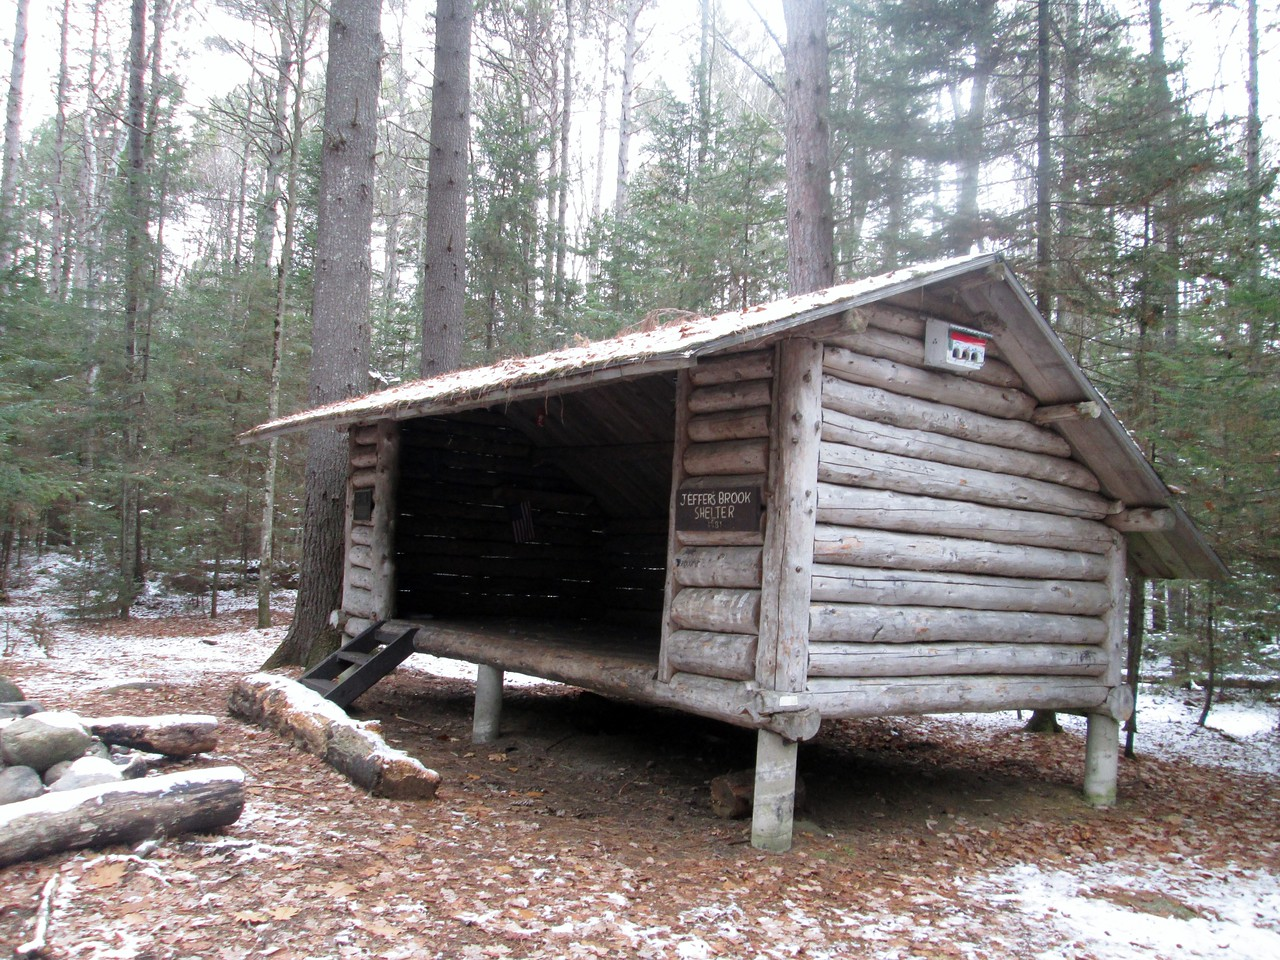 Jeffers Brook Shelter